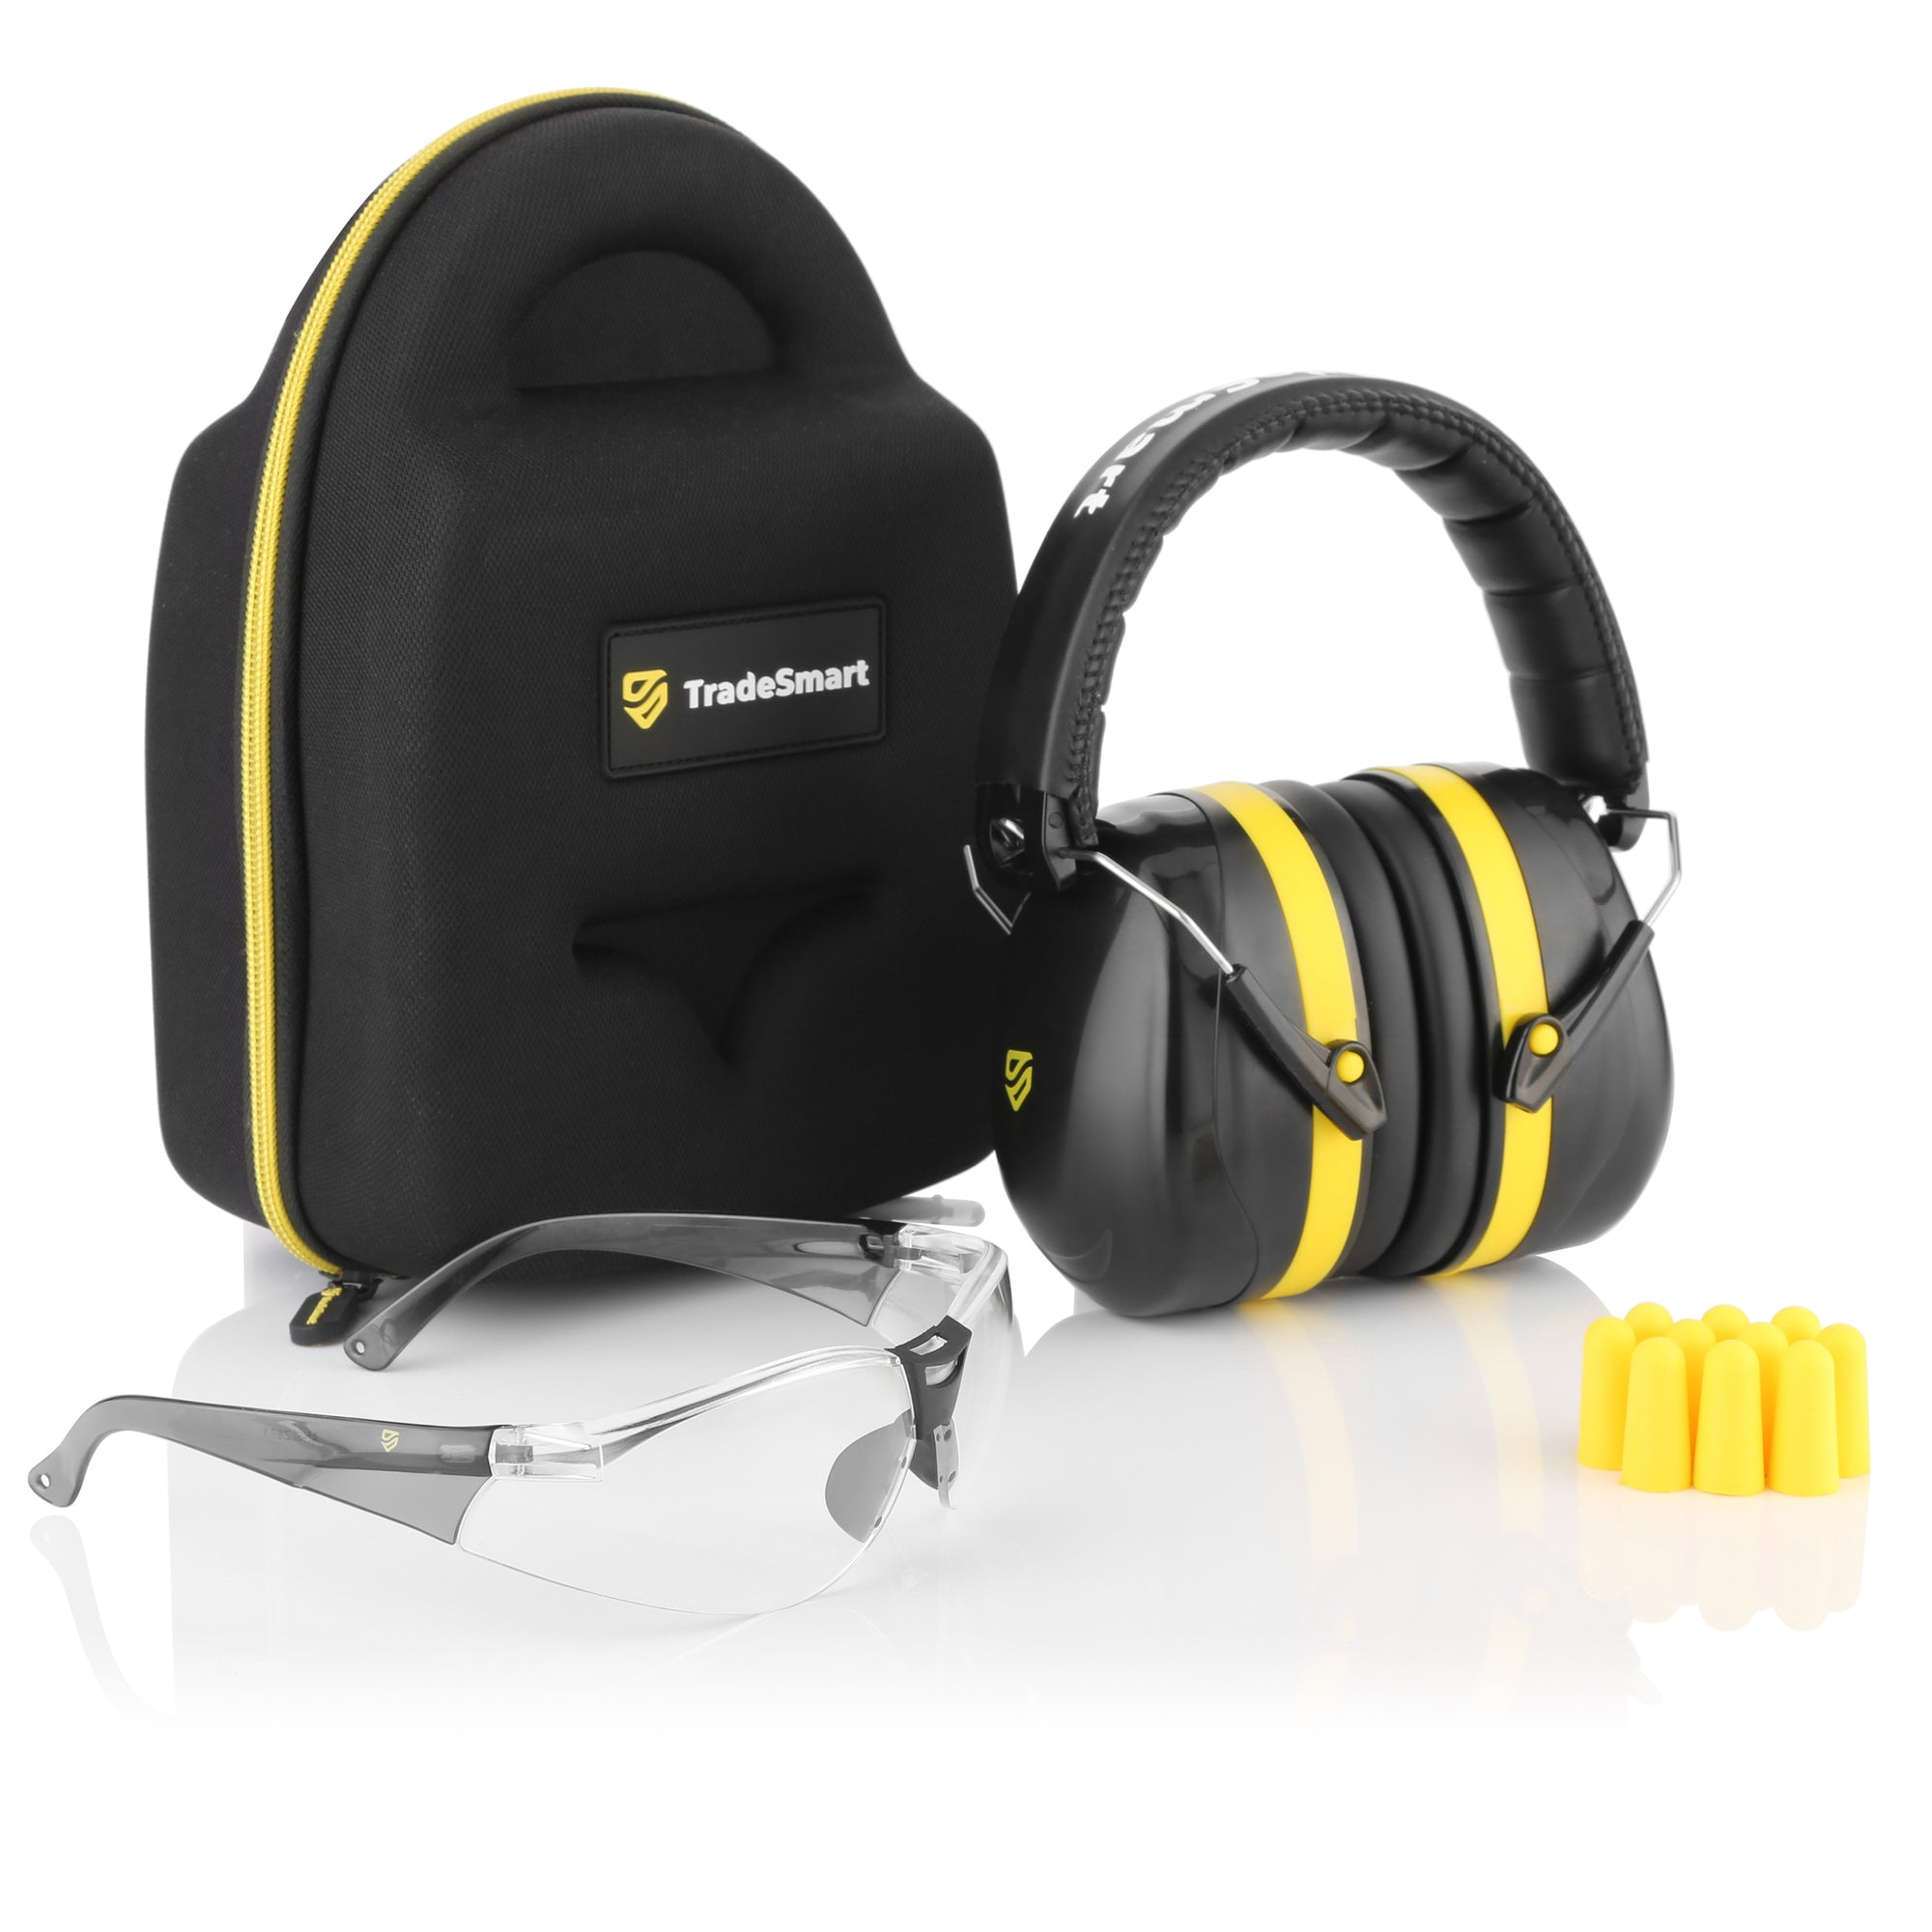 TRADESMART PROFESSIONAL - Yellow Earmuffs, Indoor Clear Safety Glasses, Protective Case & Earplugs